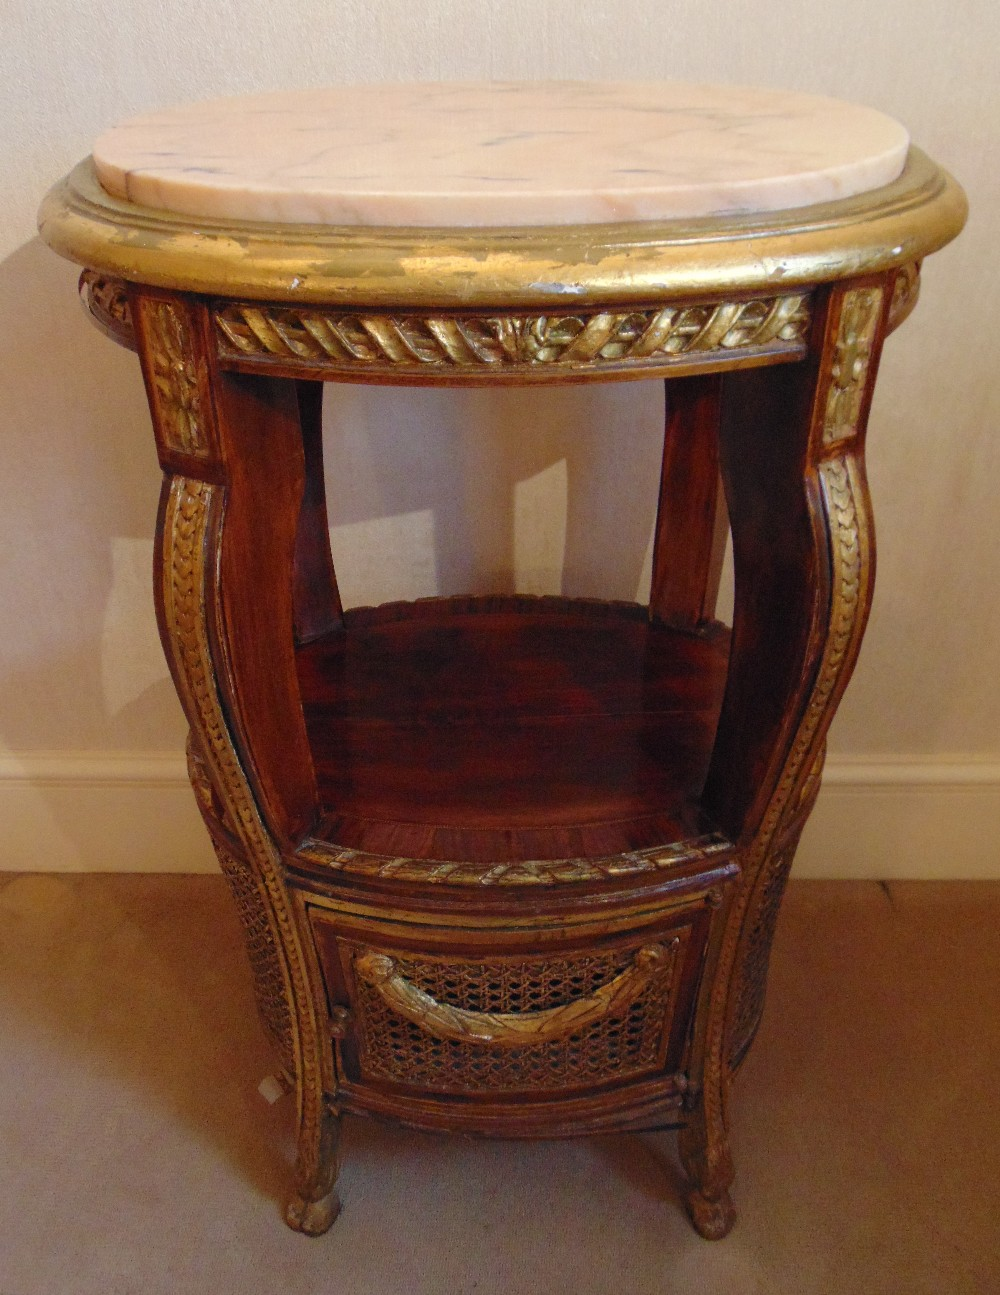 Lot 16 - An oval side table with marble inset top and bergere panels to the sides, A/F